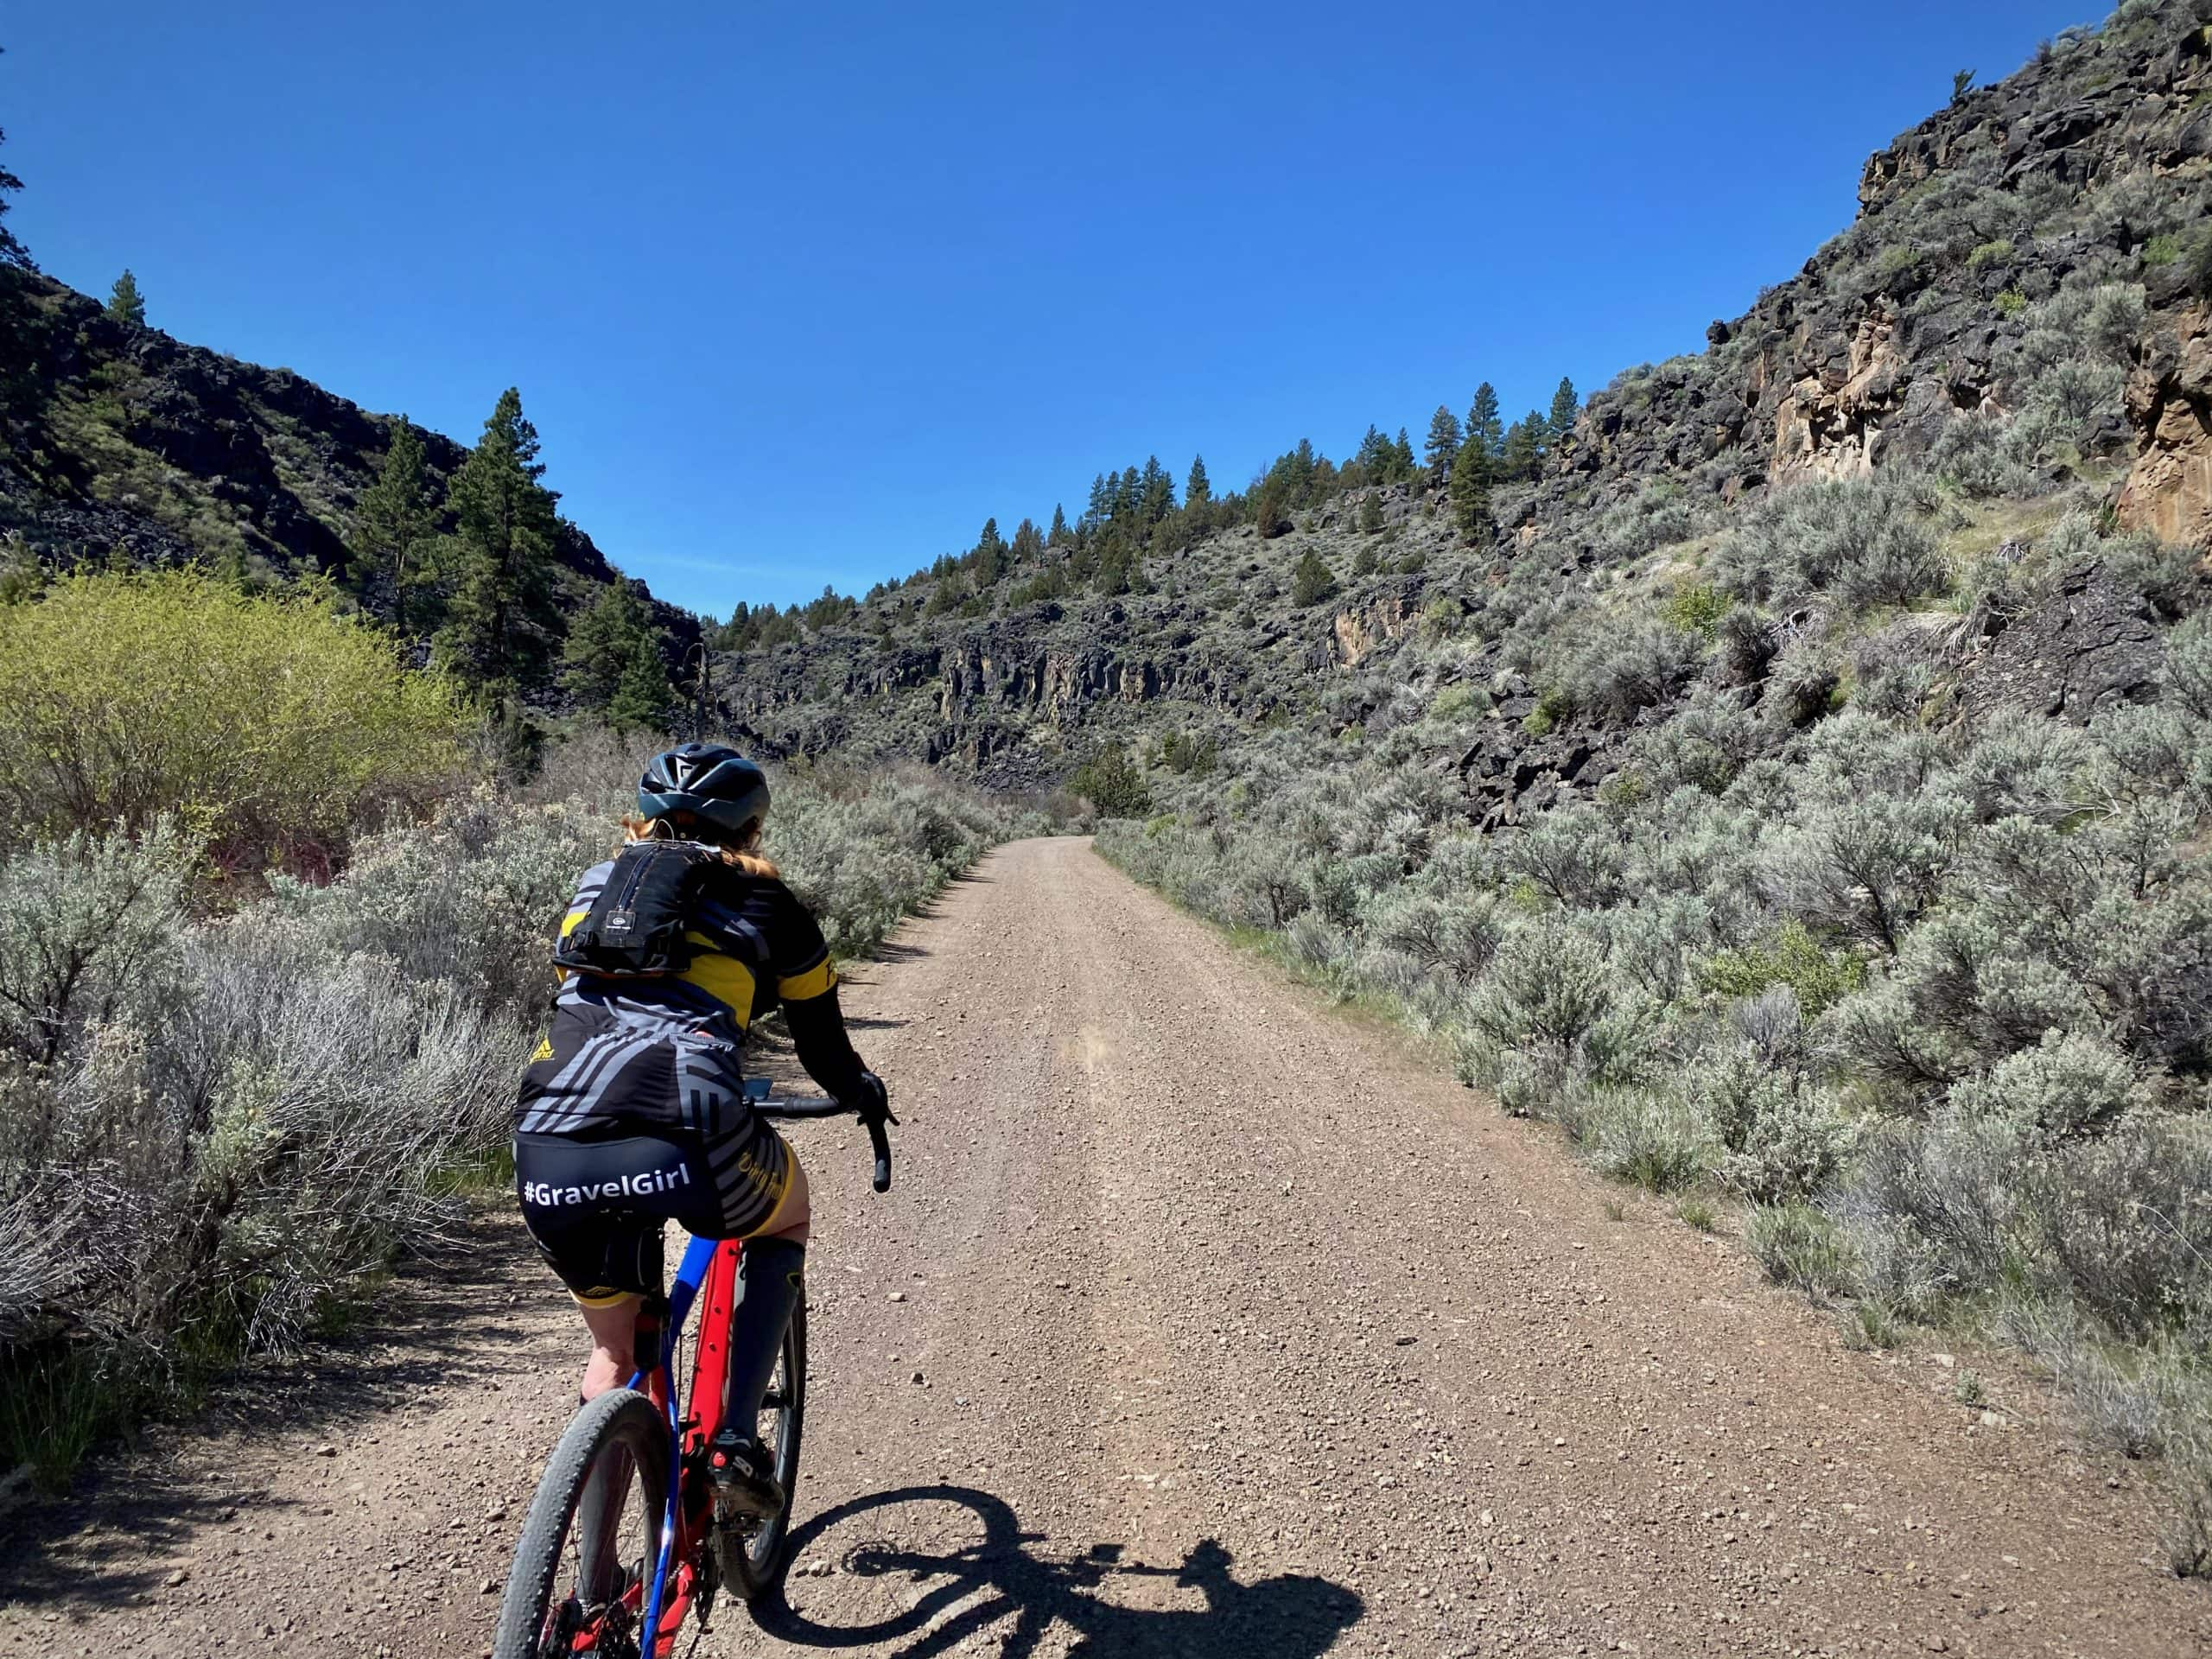 Woman gravel cyclist entering Silver Spring canyon on dirt road near Riley, OR.